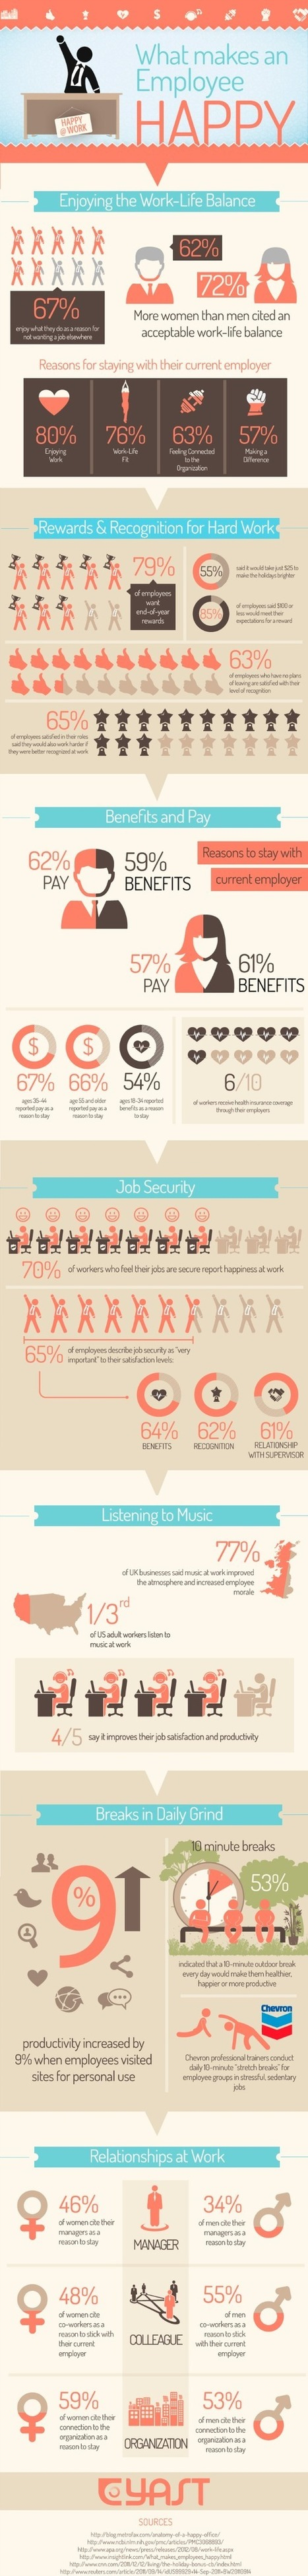 What makes an employee happy [infographic] | Social Media, the 21st Century Digital Tool Kit | Scoop.it